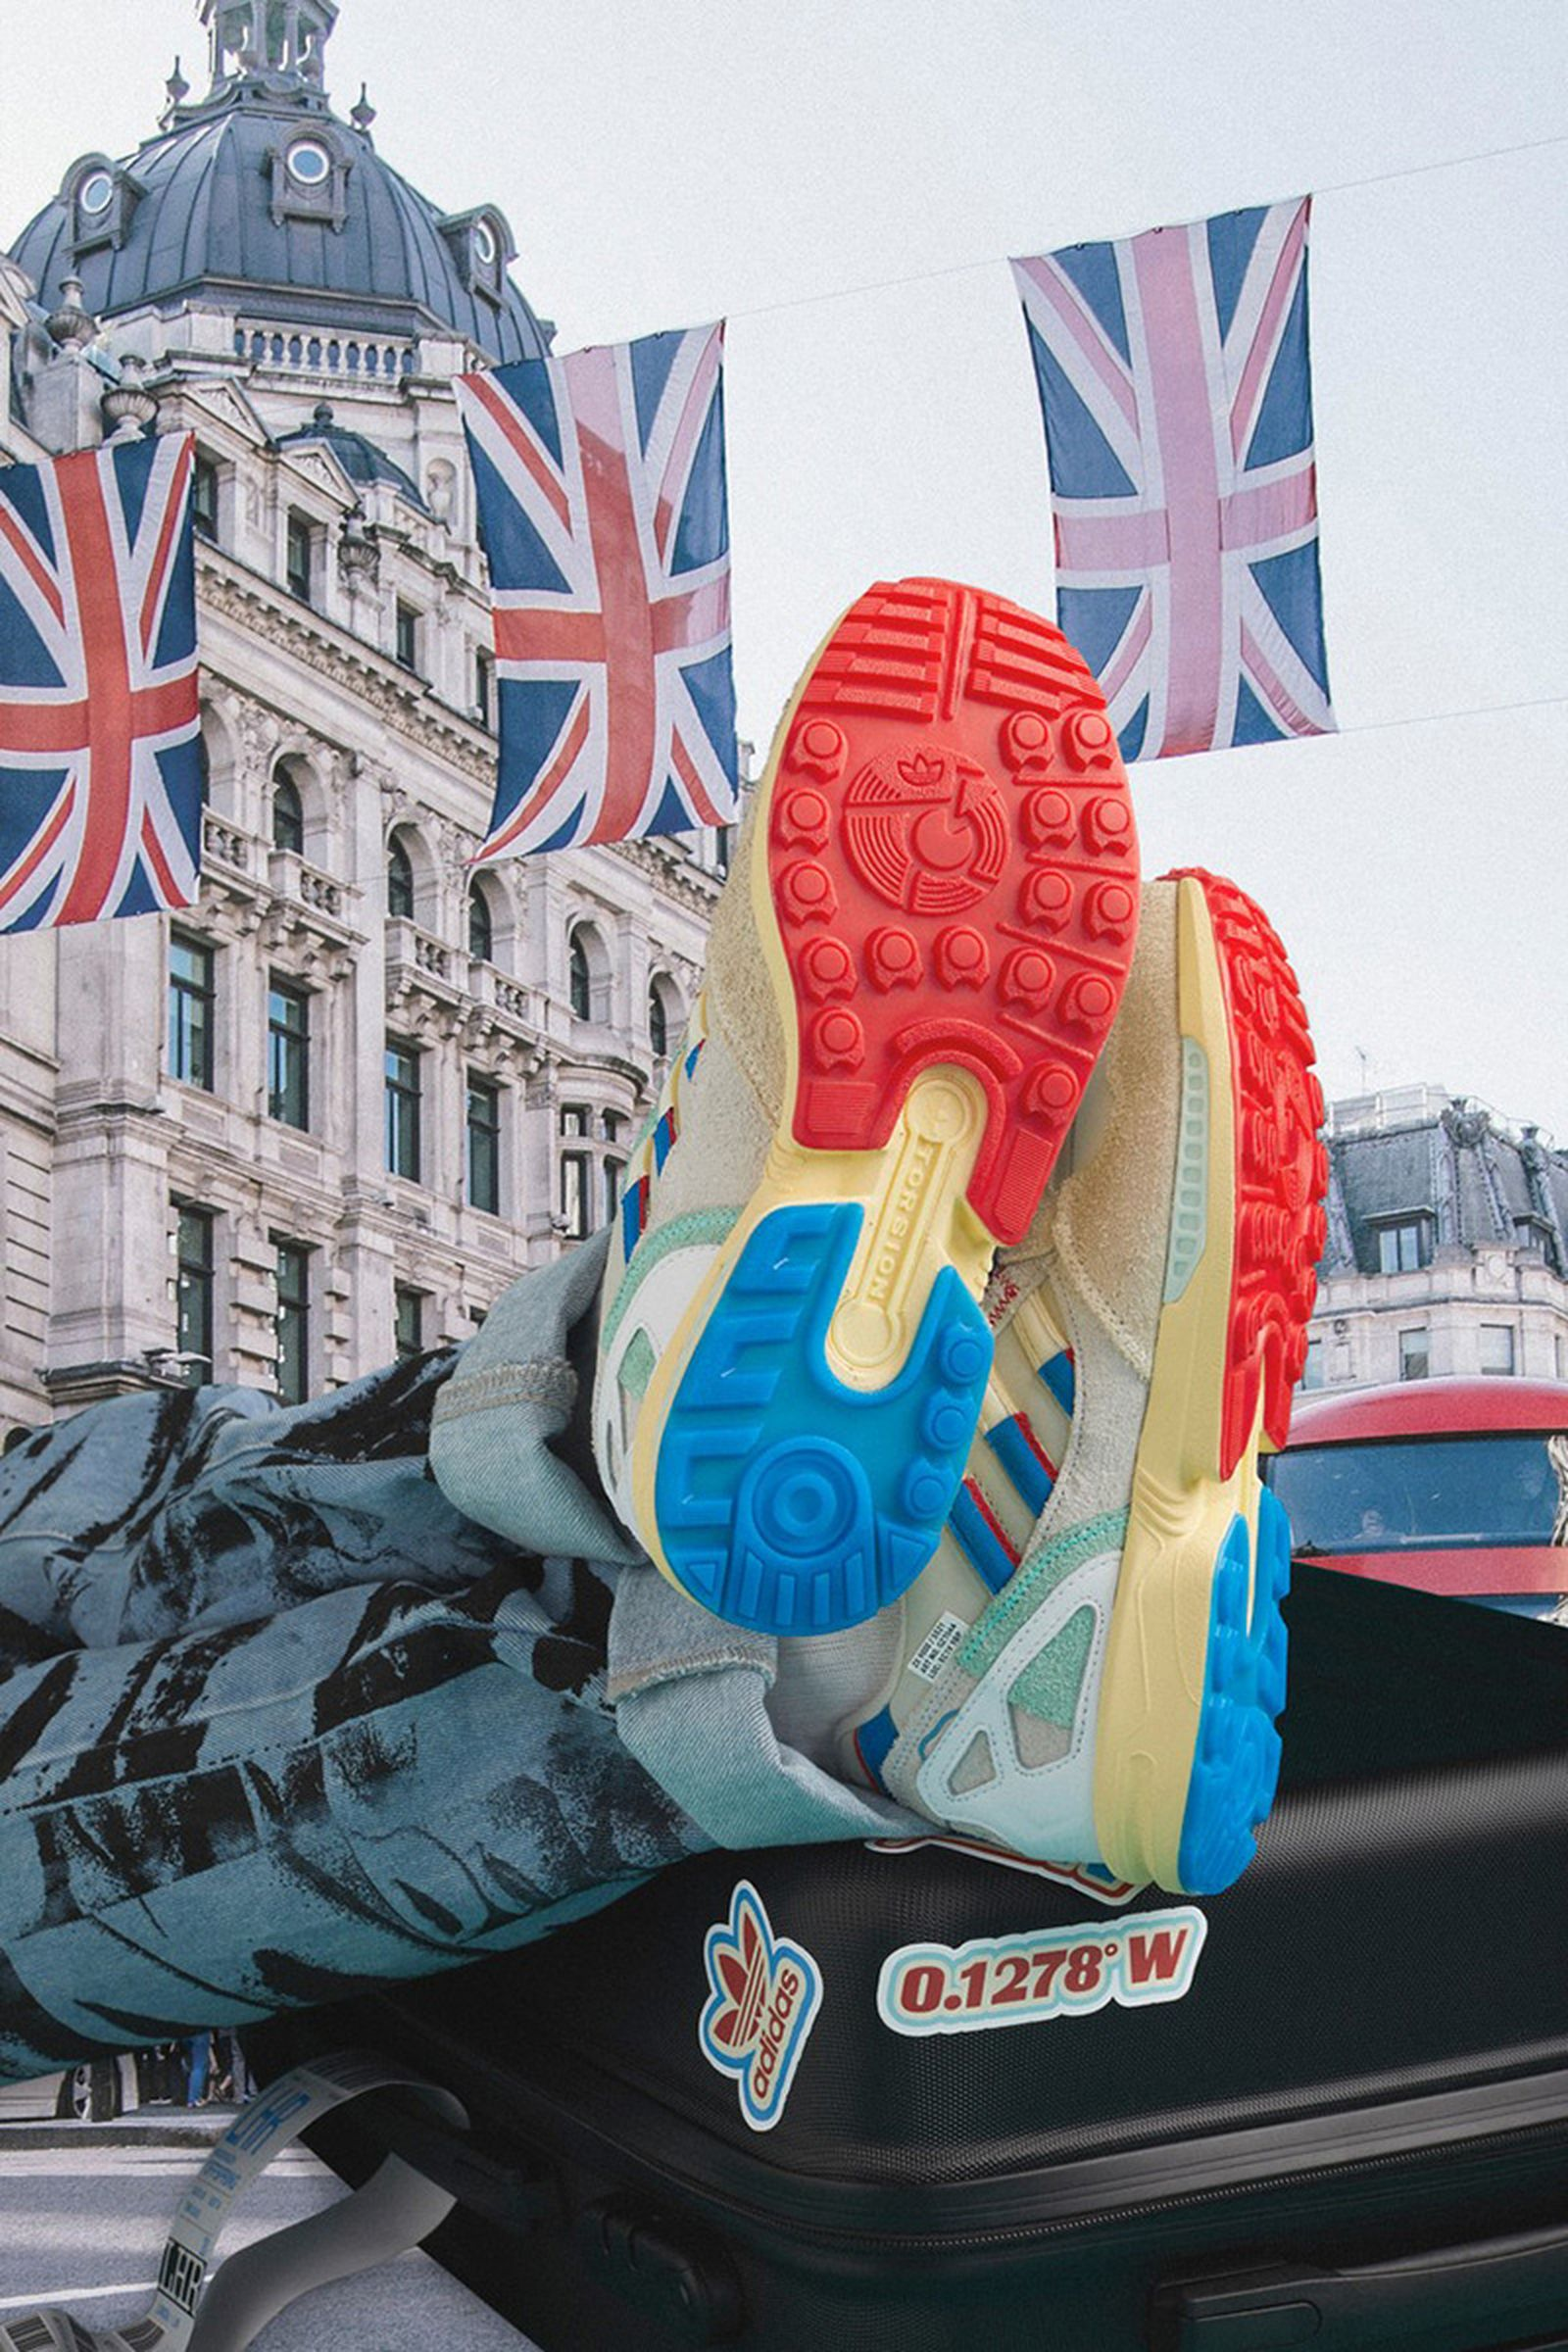 offspring-adidas-zx-9000-london-release-date-price-02